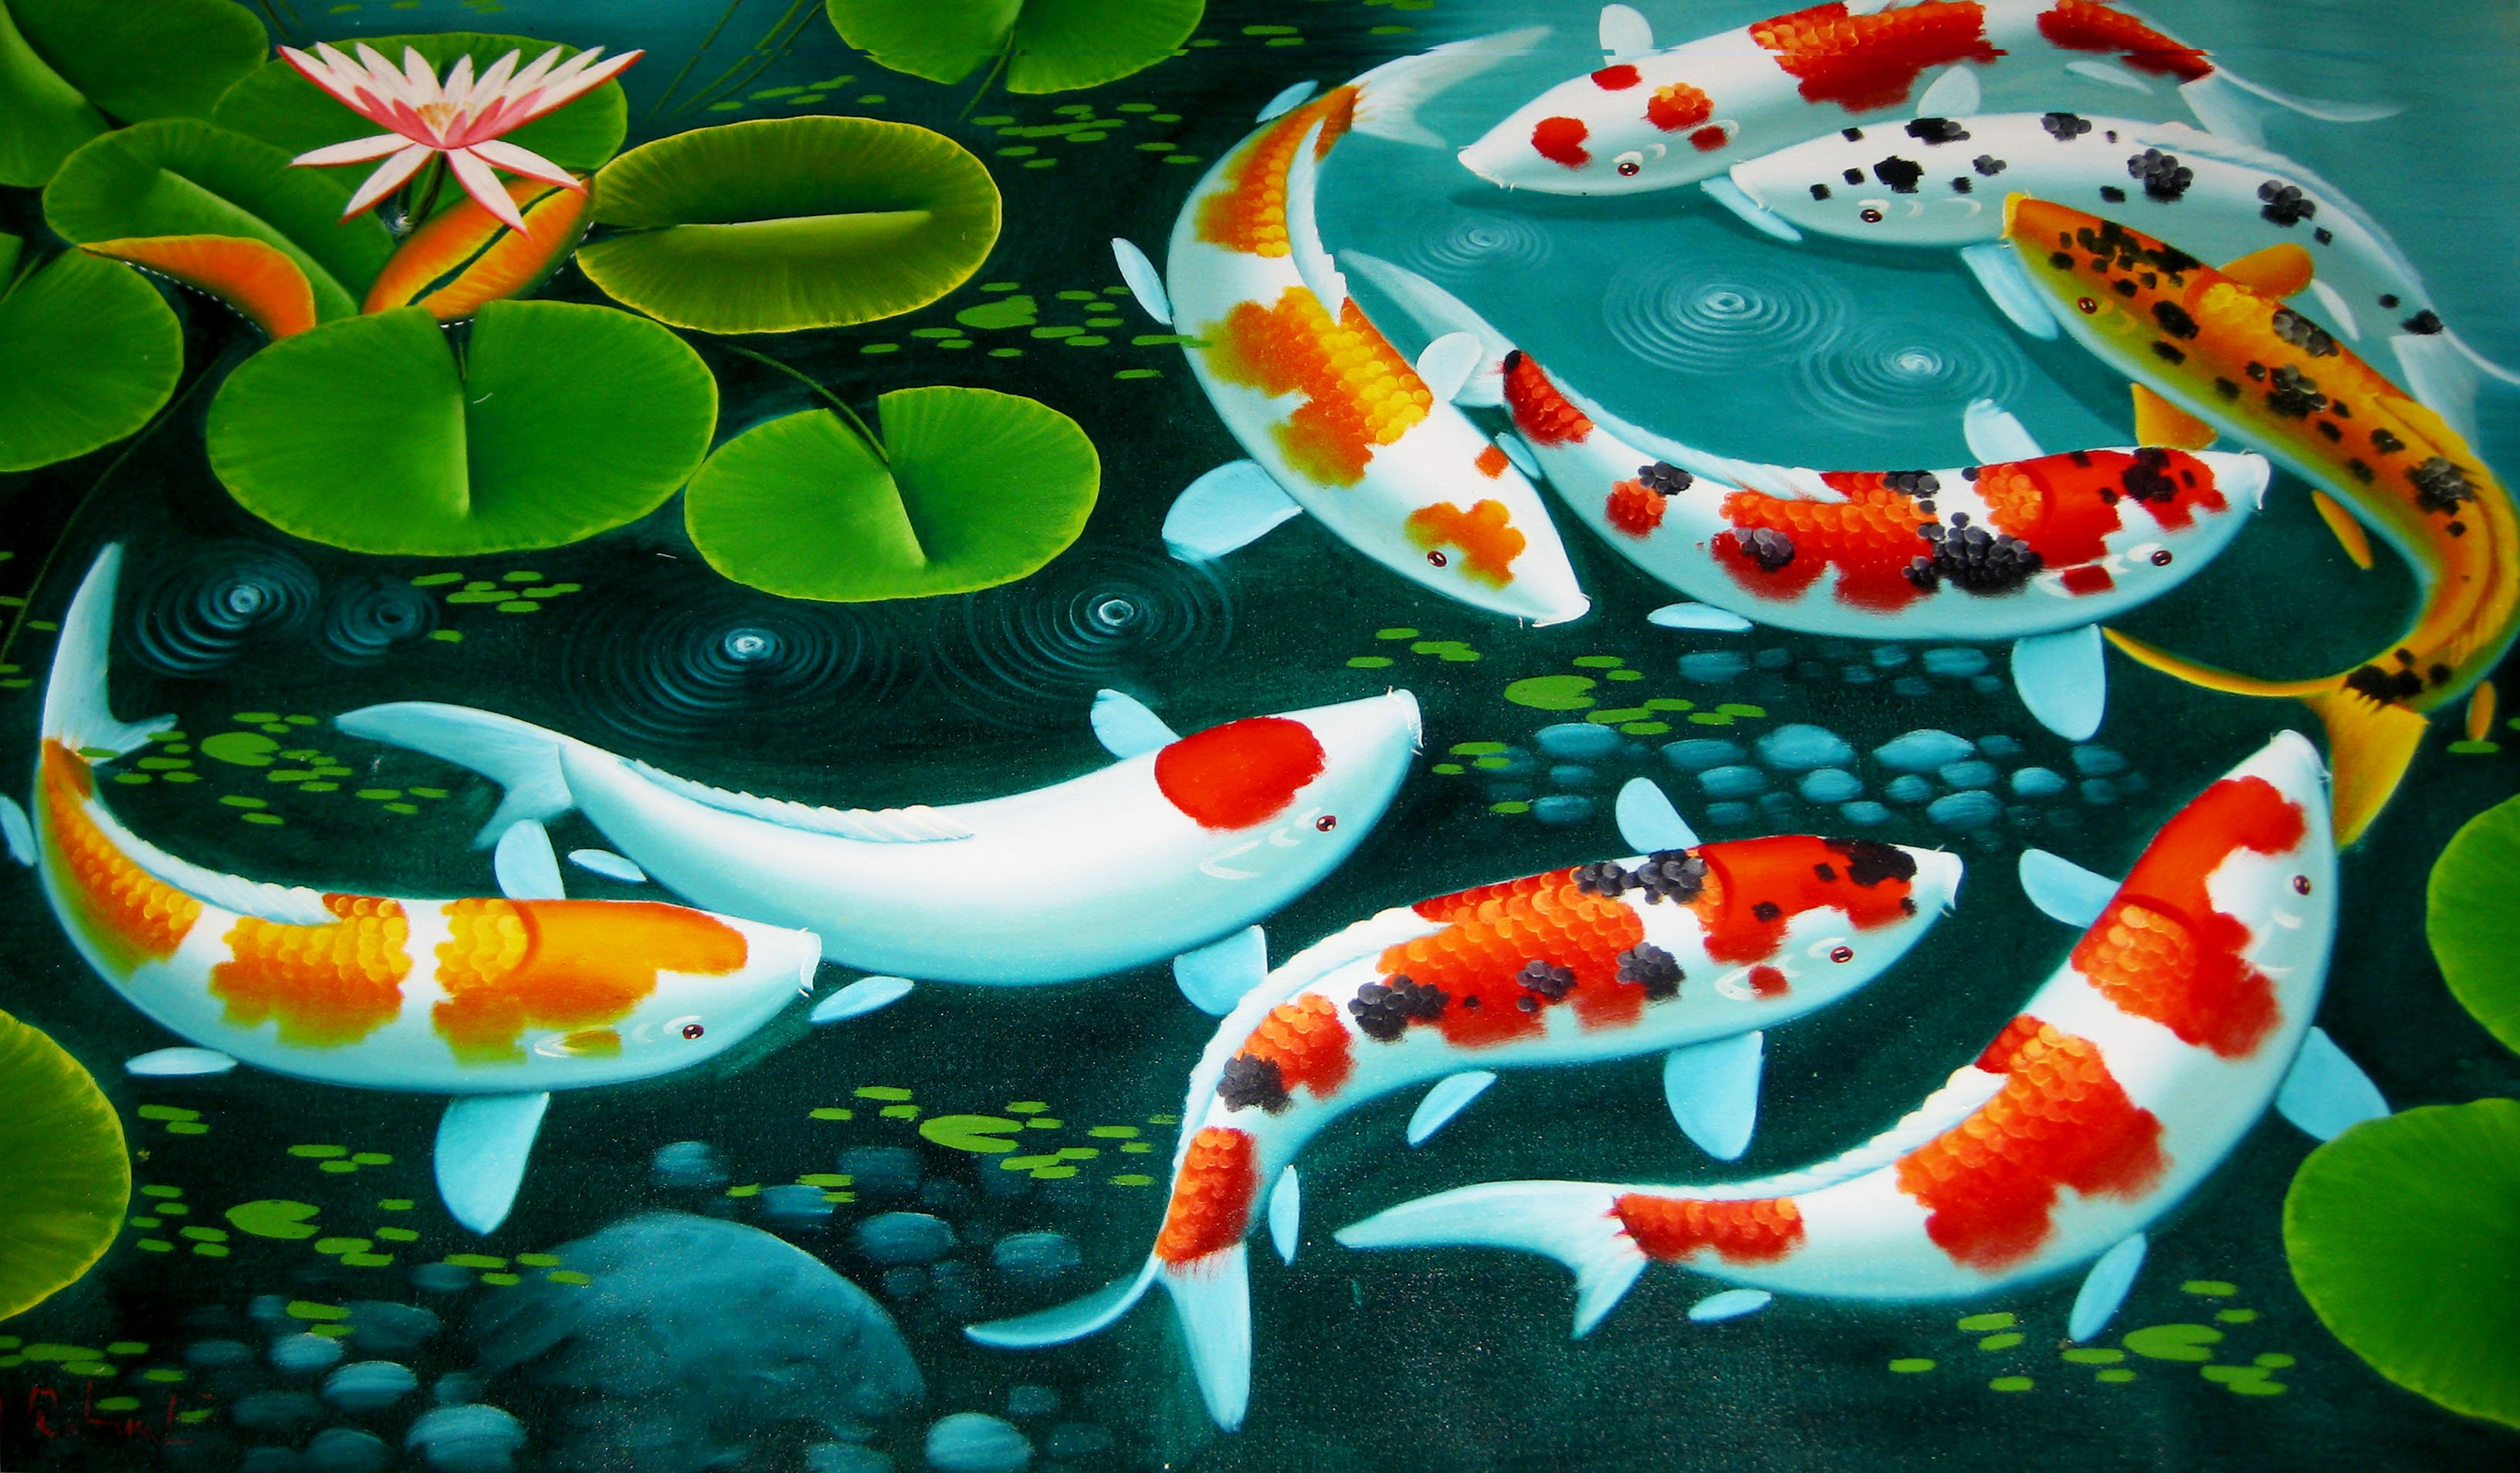 Koi pond wallpaper wallpapersafari for Koi pond pics